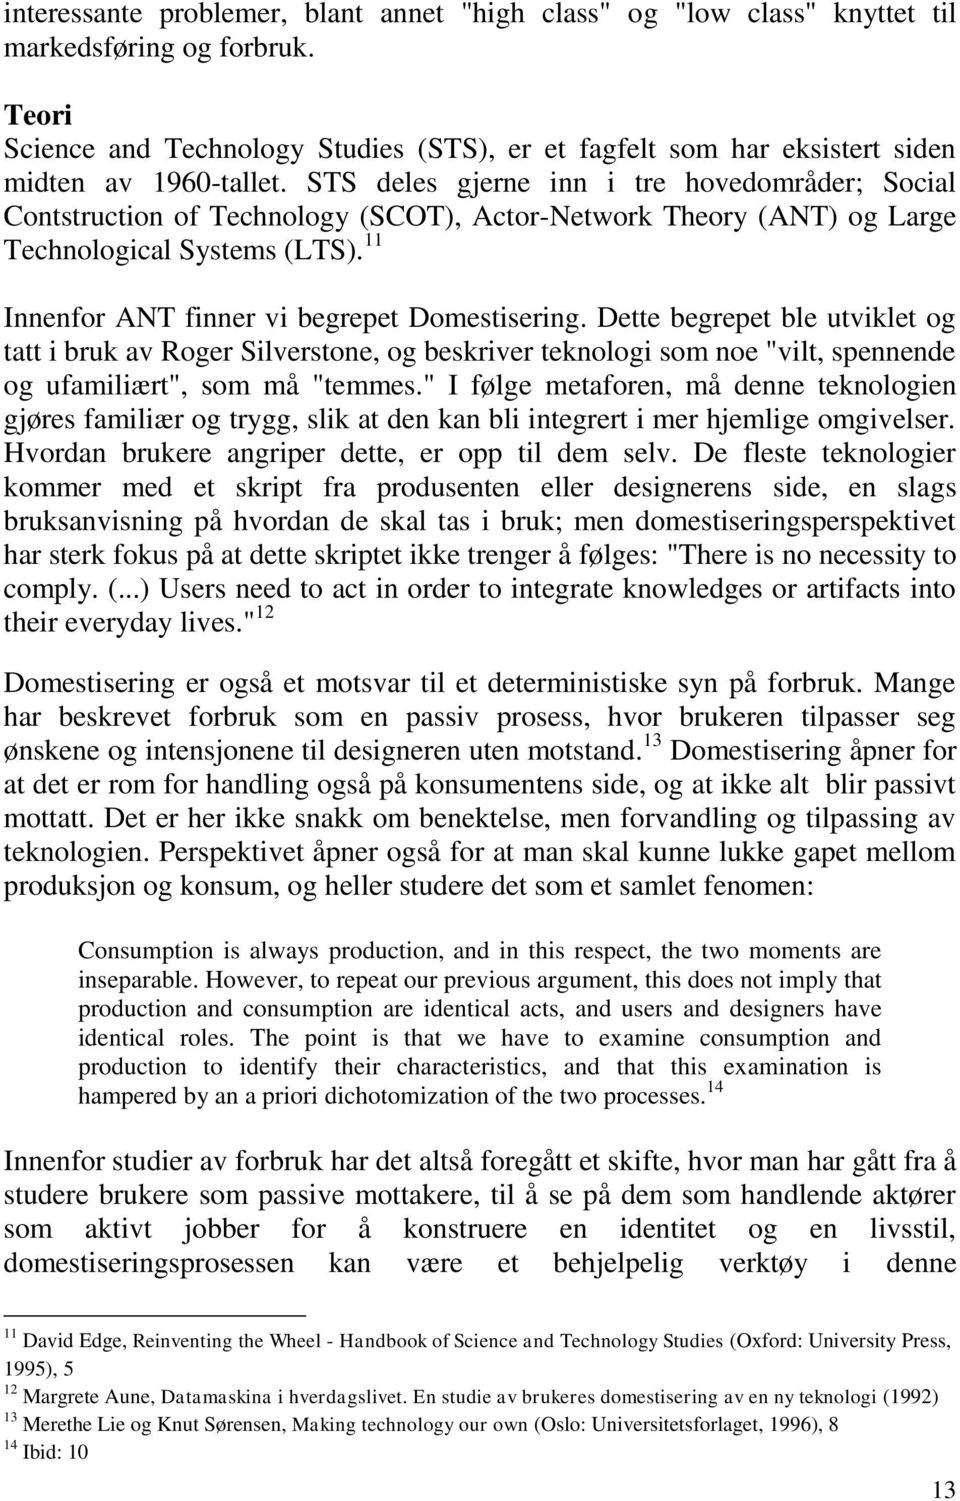 STS deles gjerne inn i tre hovedområder; Social Contstruction of Technology (SCOT), Actor-Network Theory (ANT) og Large Technological Systems (LTS). 11 Innenfor ANT finner vi begrepet Domestisering.